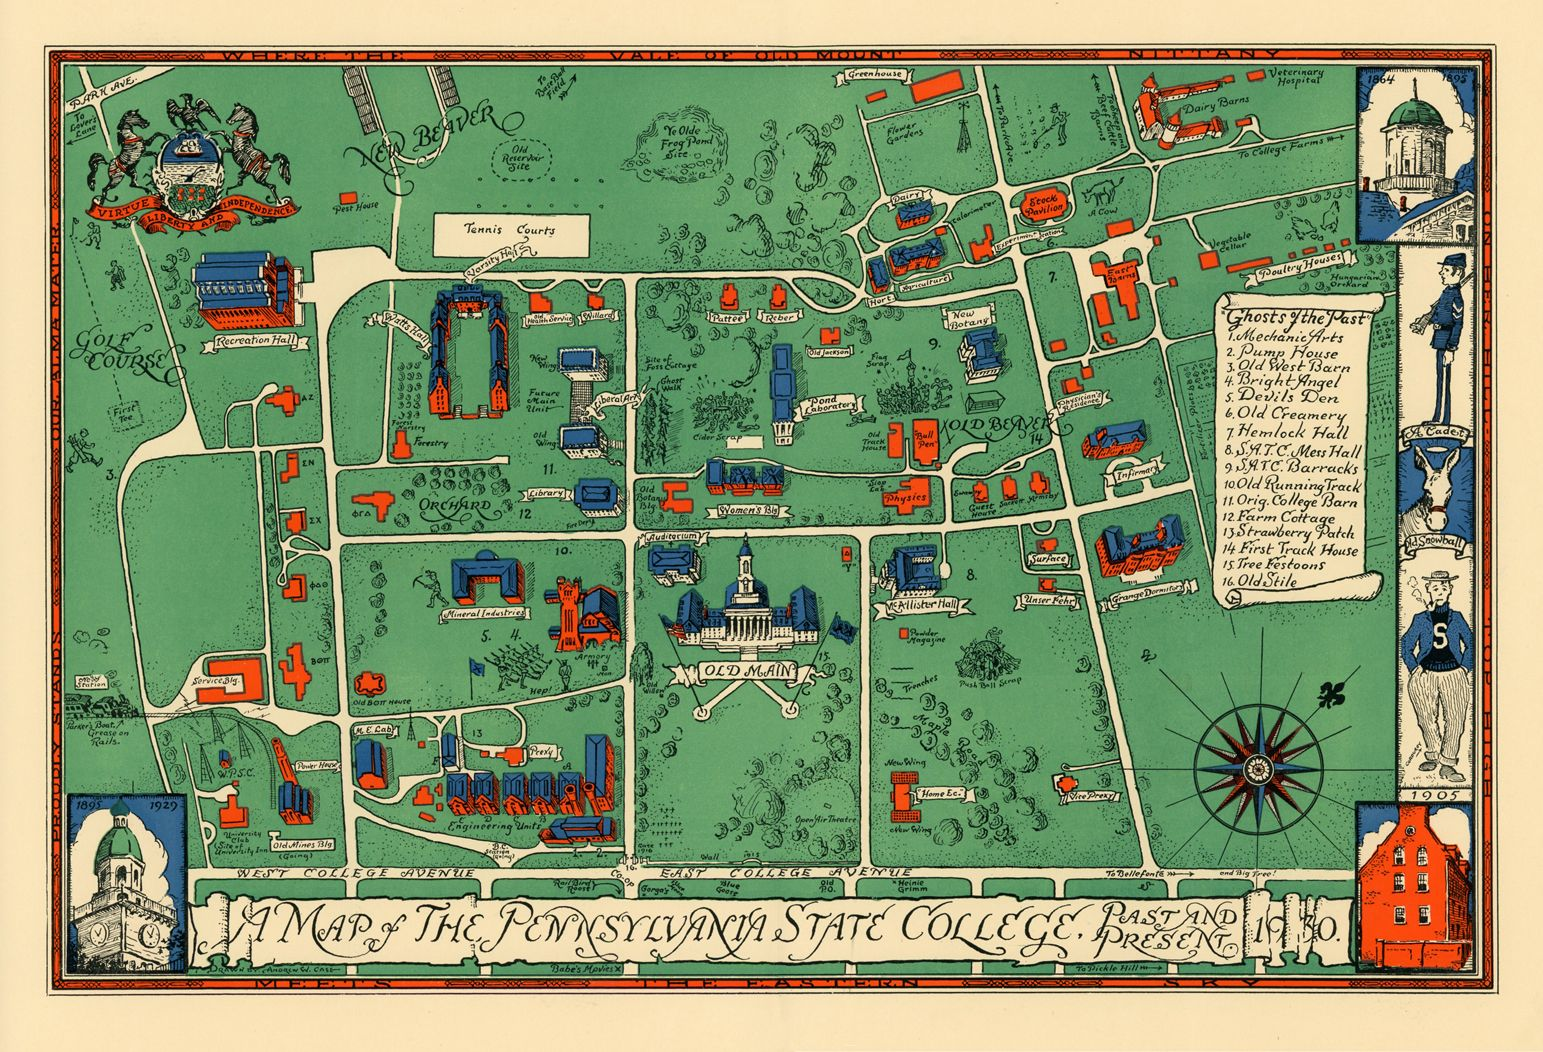 map of penn state campuses A Cool 1930 Map Of Penn State Campus Map Penn State Penn State map of penn state campuses